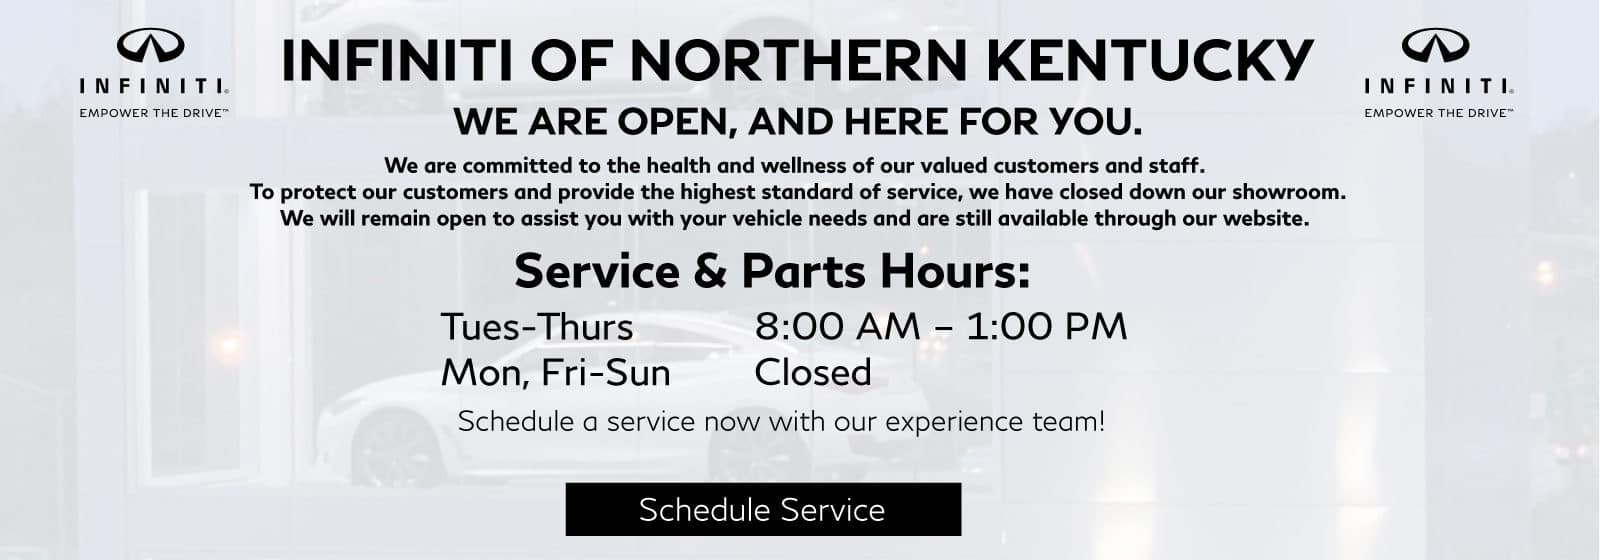 Dealership hours have changed due to COVID-19. Sales department is closed but available via the website. Service is open Tuesday to Thursday 8am-1pm.